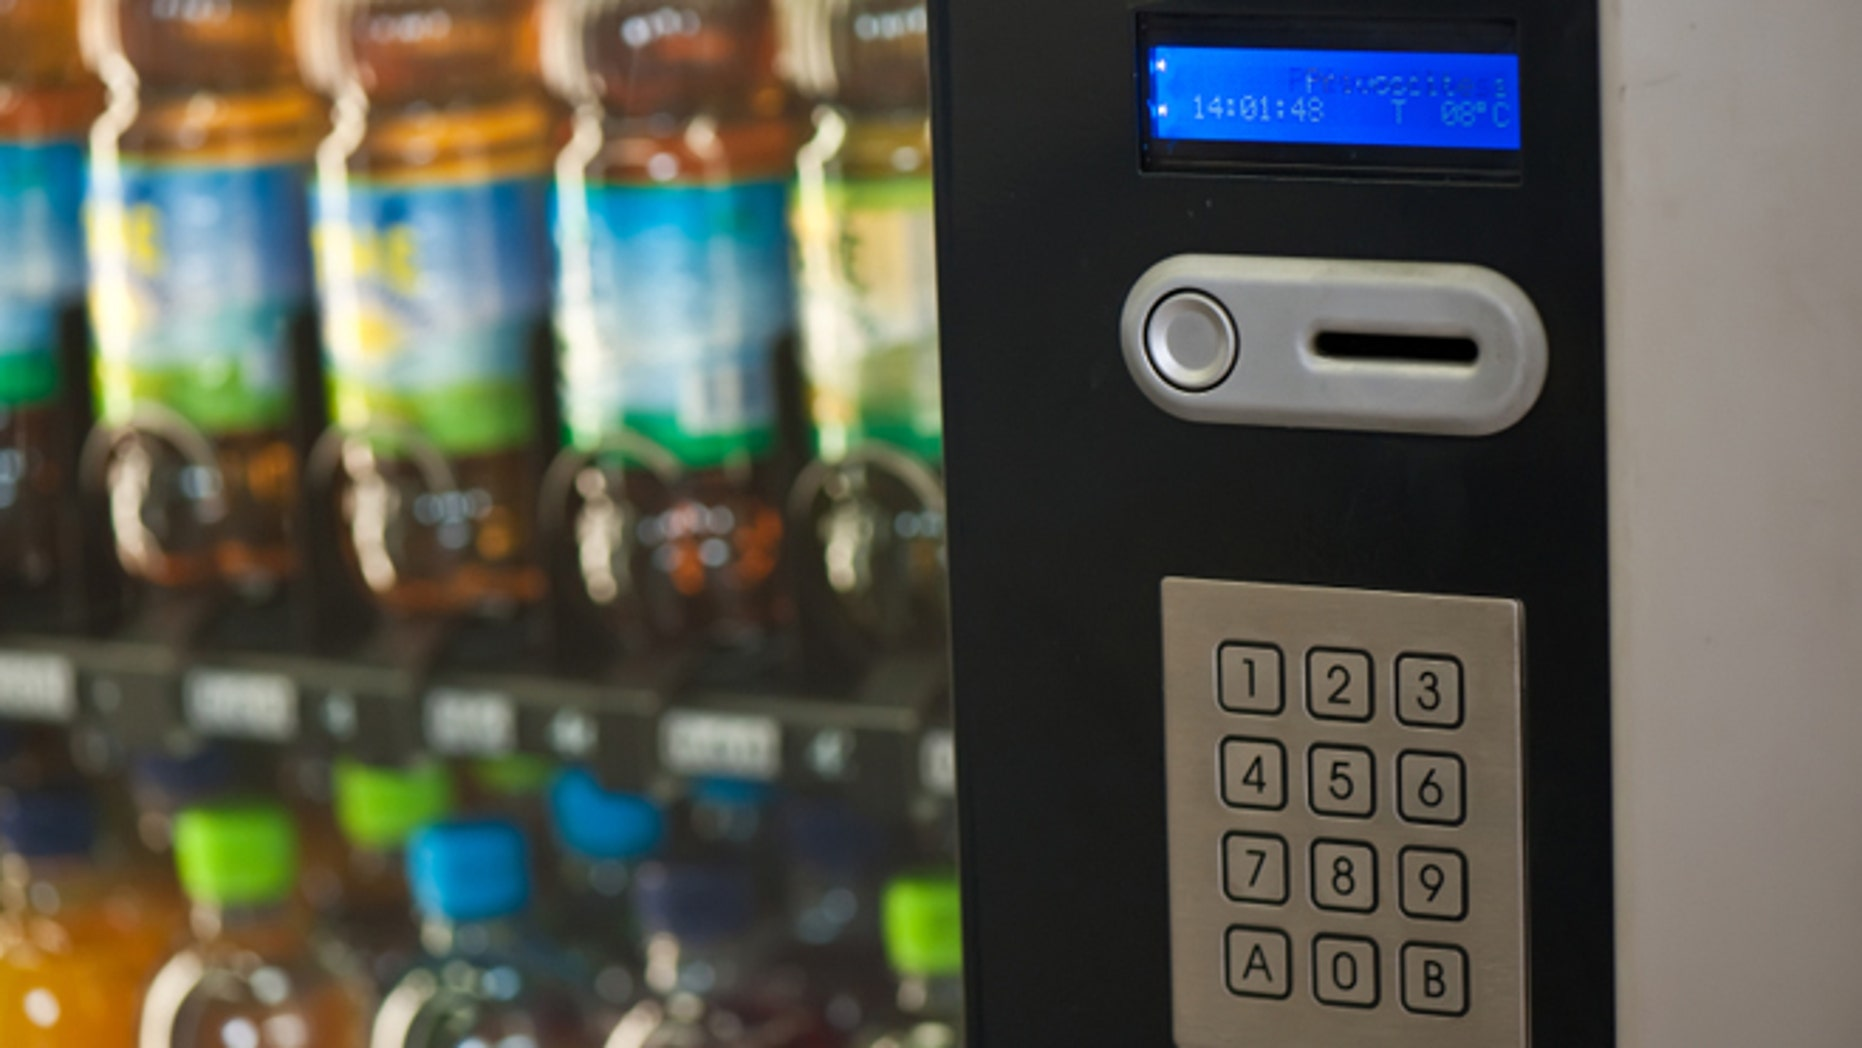 A vending machine provides various beverages